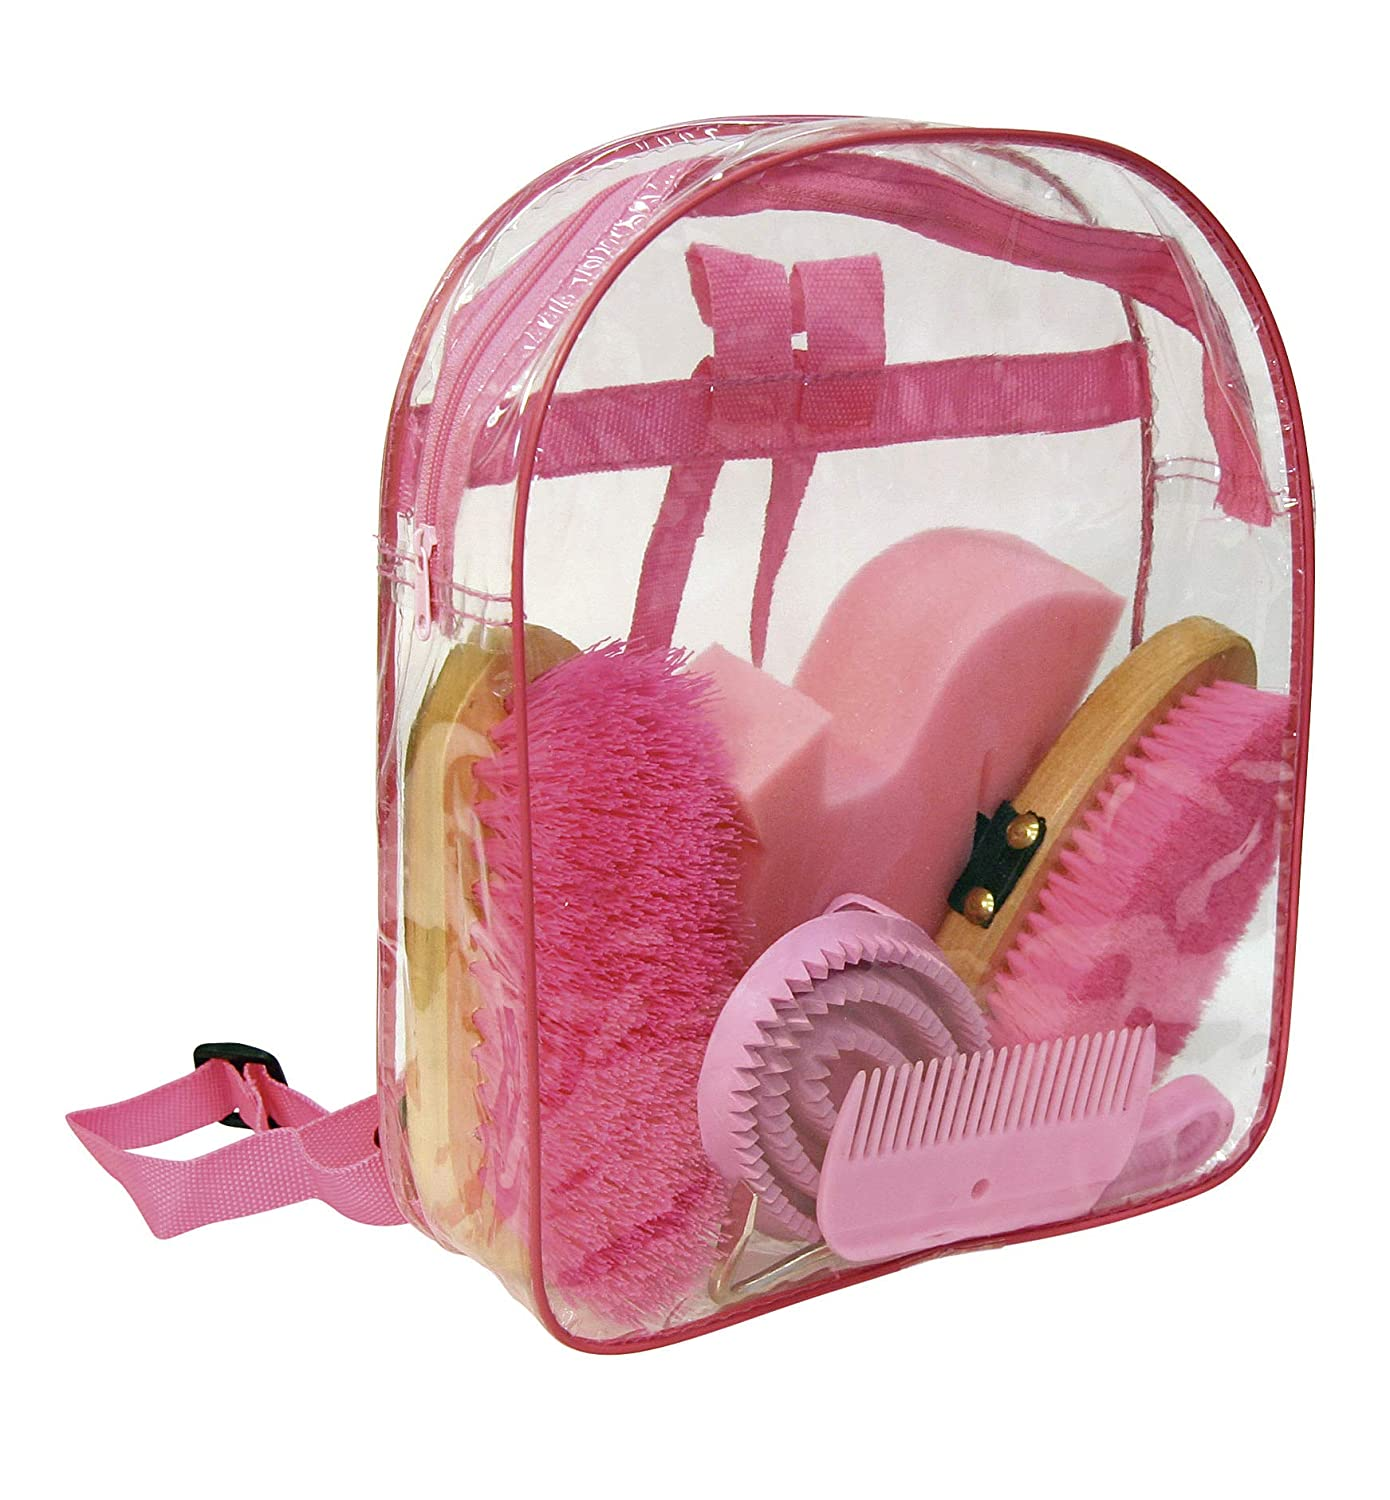 KERBL (Koeber) grooming kit backpack junior pink KE-HA-32796 Pink